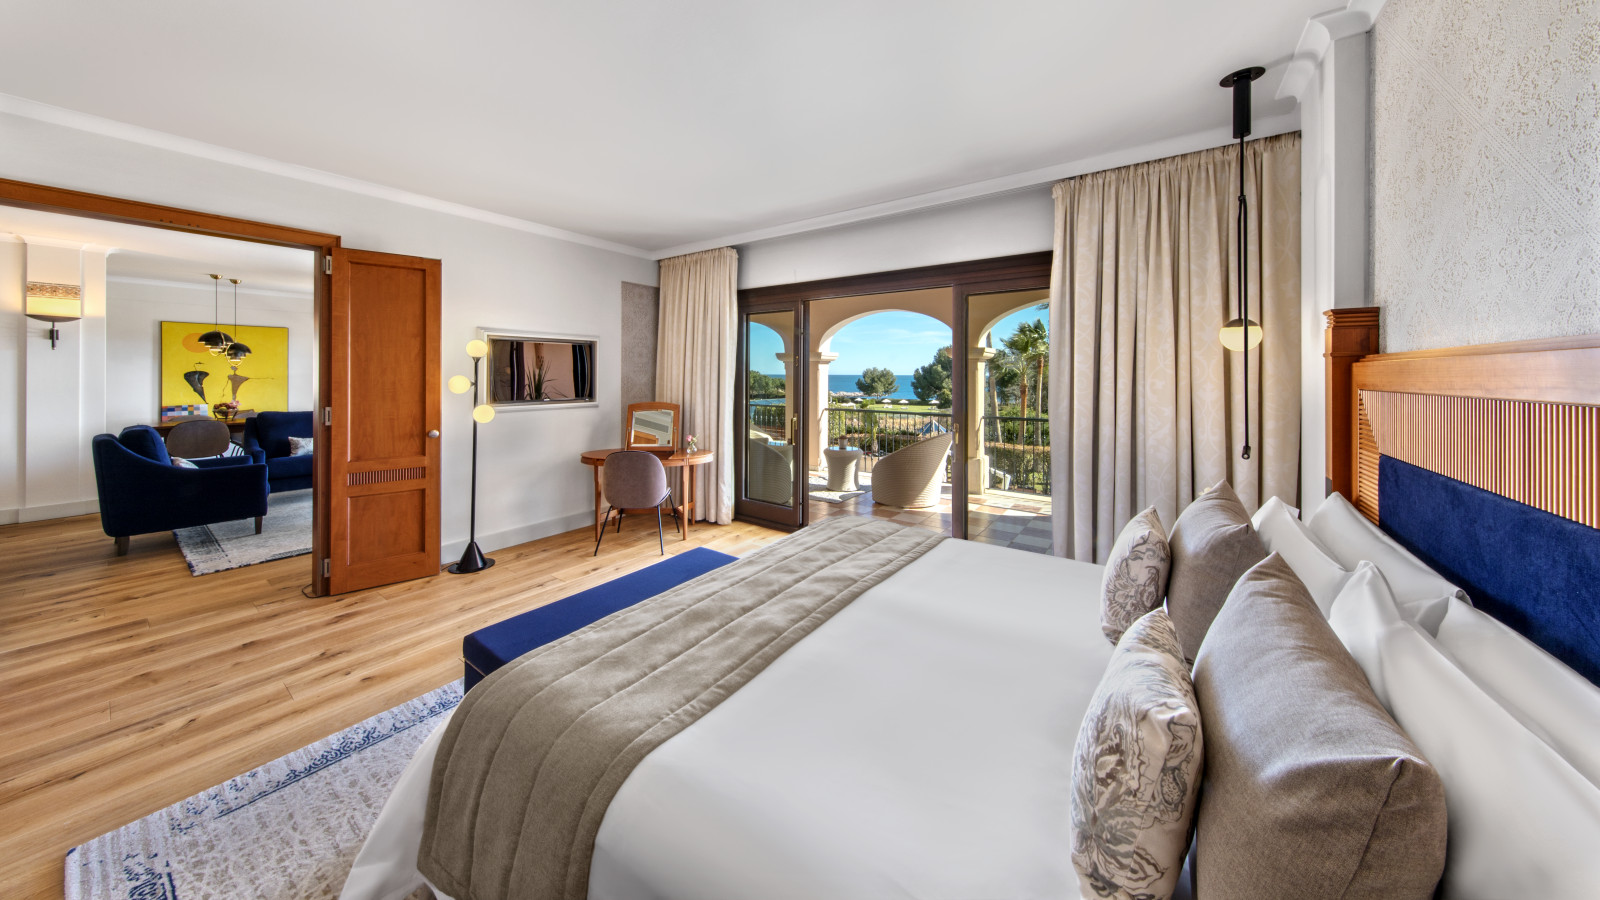 Newly refurbished Ocean One Suite at the luxus spa resort in Mallorca The St. Regis Mardavall